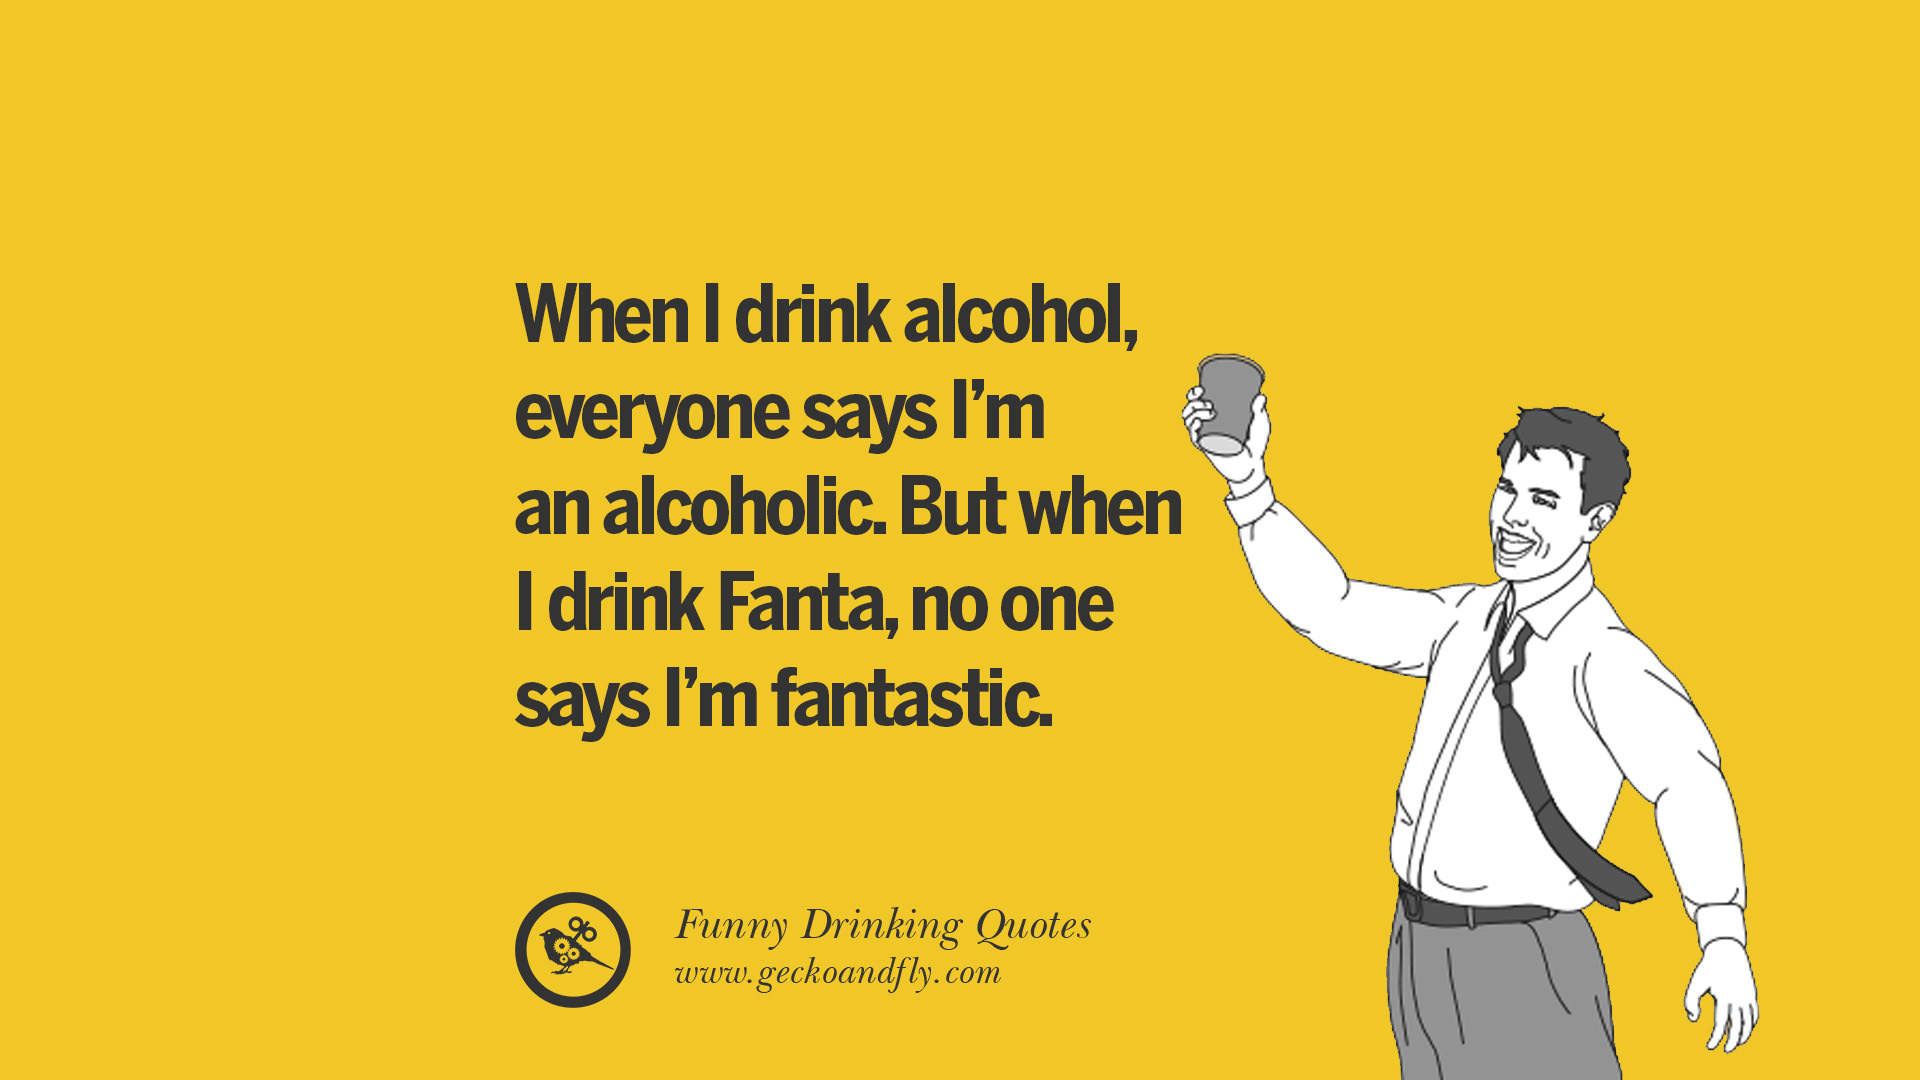 50 Funny Saying On Drinking Alcohol, Having Fun, And Partying